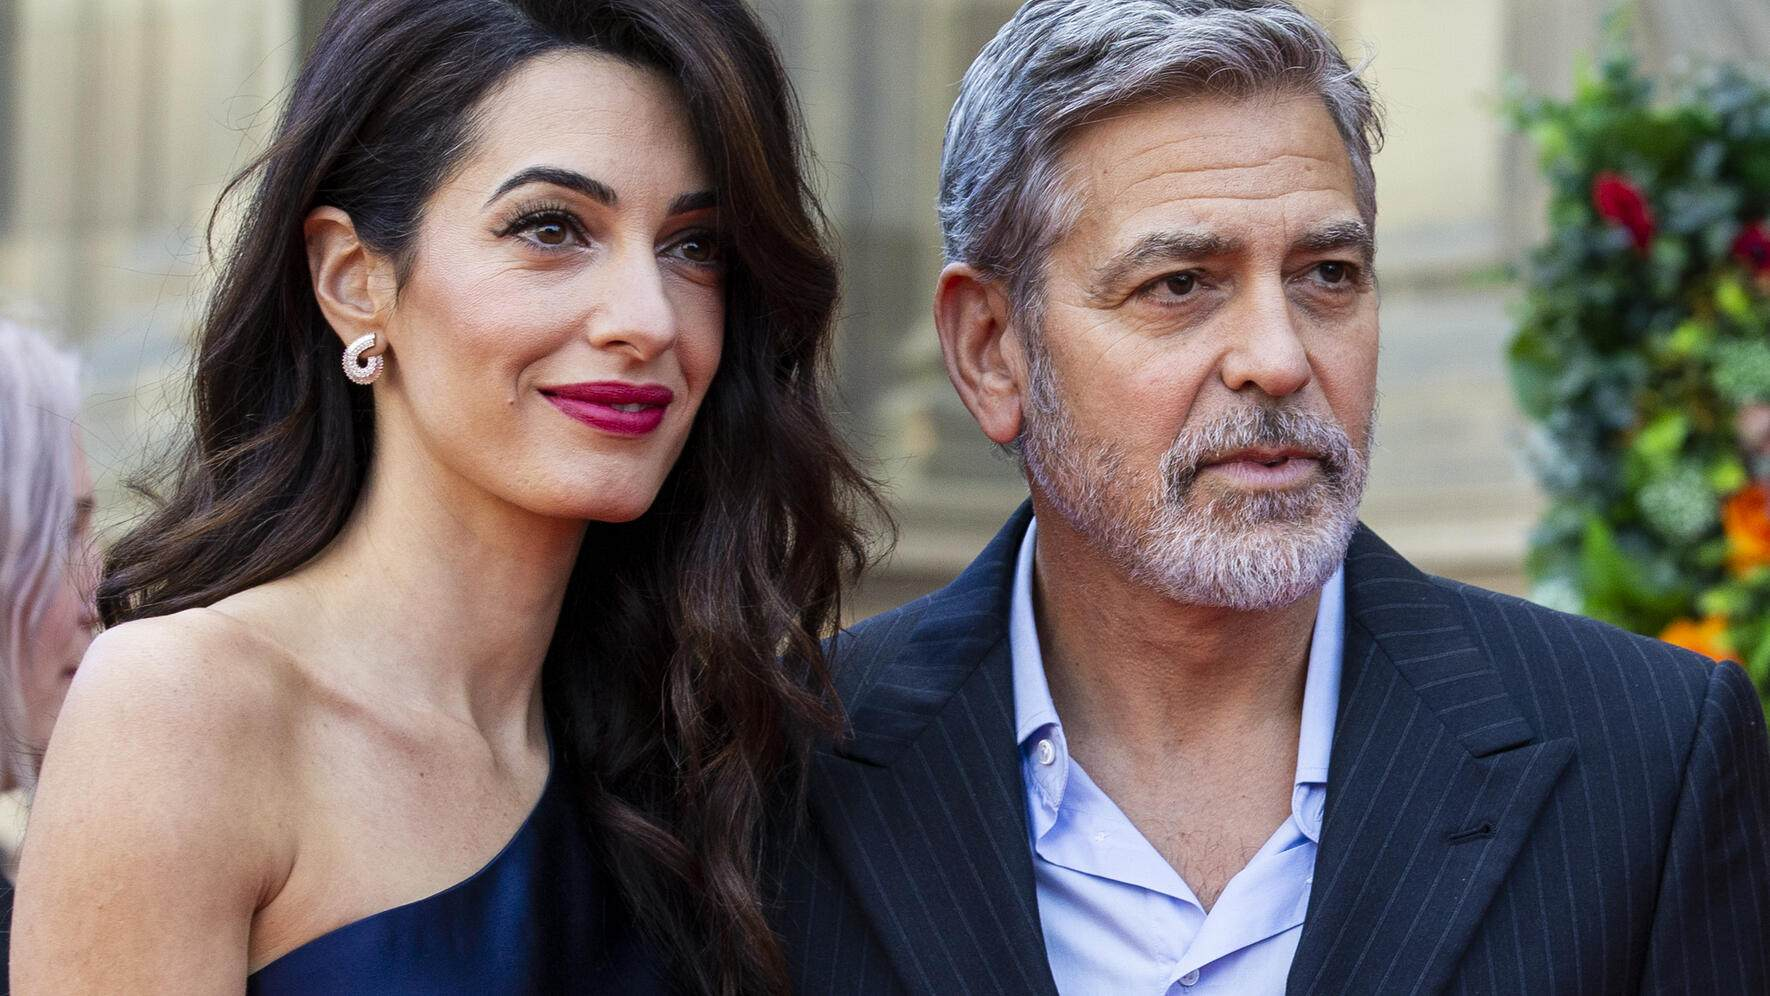 EDINBURGH, SCOTLAND - MARCH 14: George and Amal Clooney attend the People's Postcode Lottery Charity Gala at McEwan Hall on March 15, 2019 in Edinburgh, Scotland. The couple will be honoured for their international humanitarian work through the Clooney Foundation for Justice. (Photo by Duncan McGlynn/Getty Images)